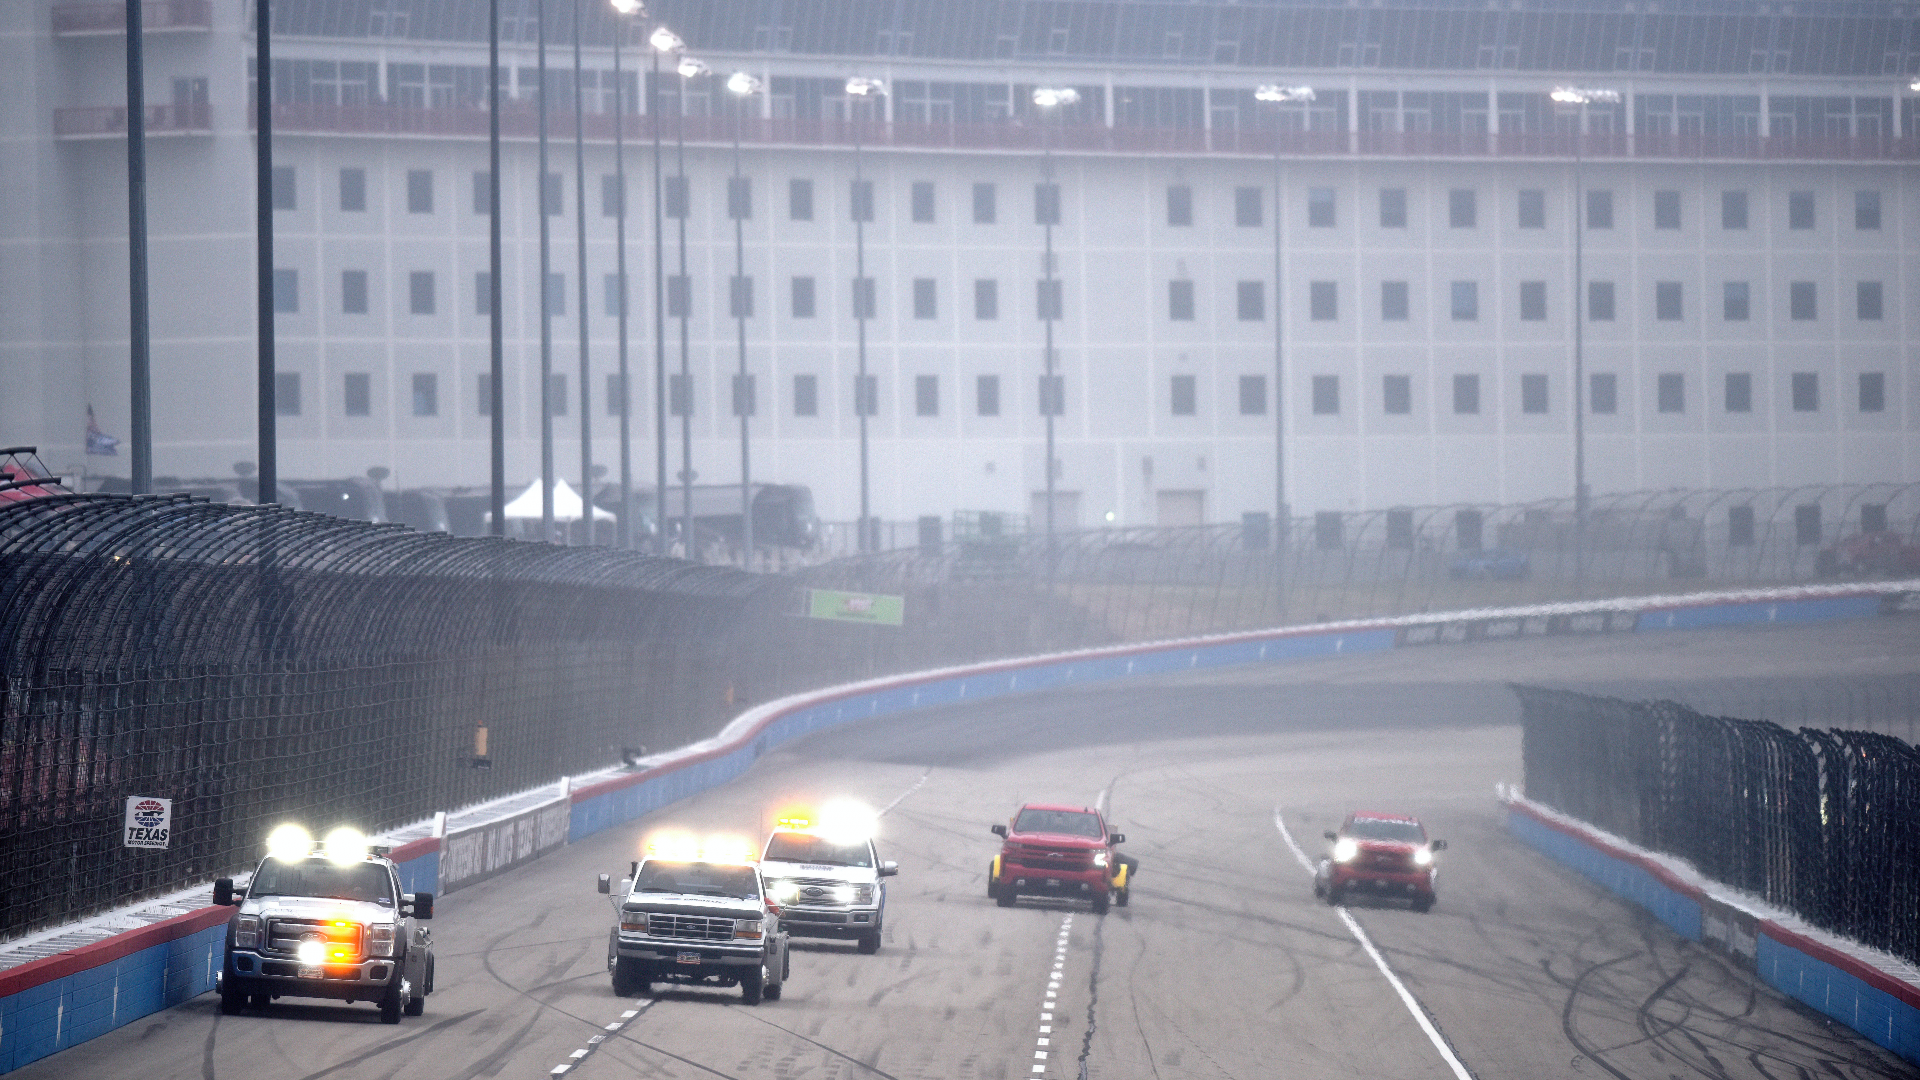 NASCAR at Texas rain delay updates: 2020 Cup Series playoff race pushed to Wednesday